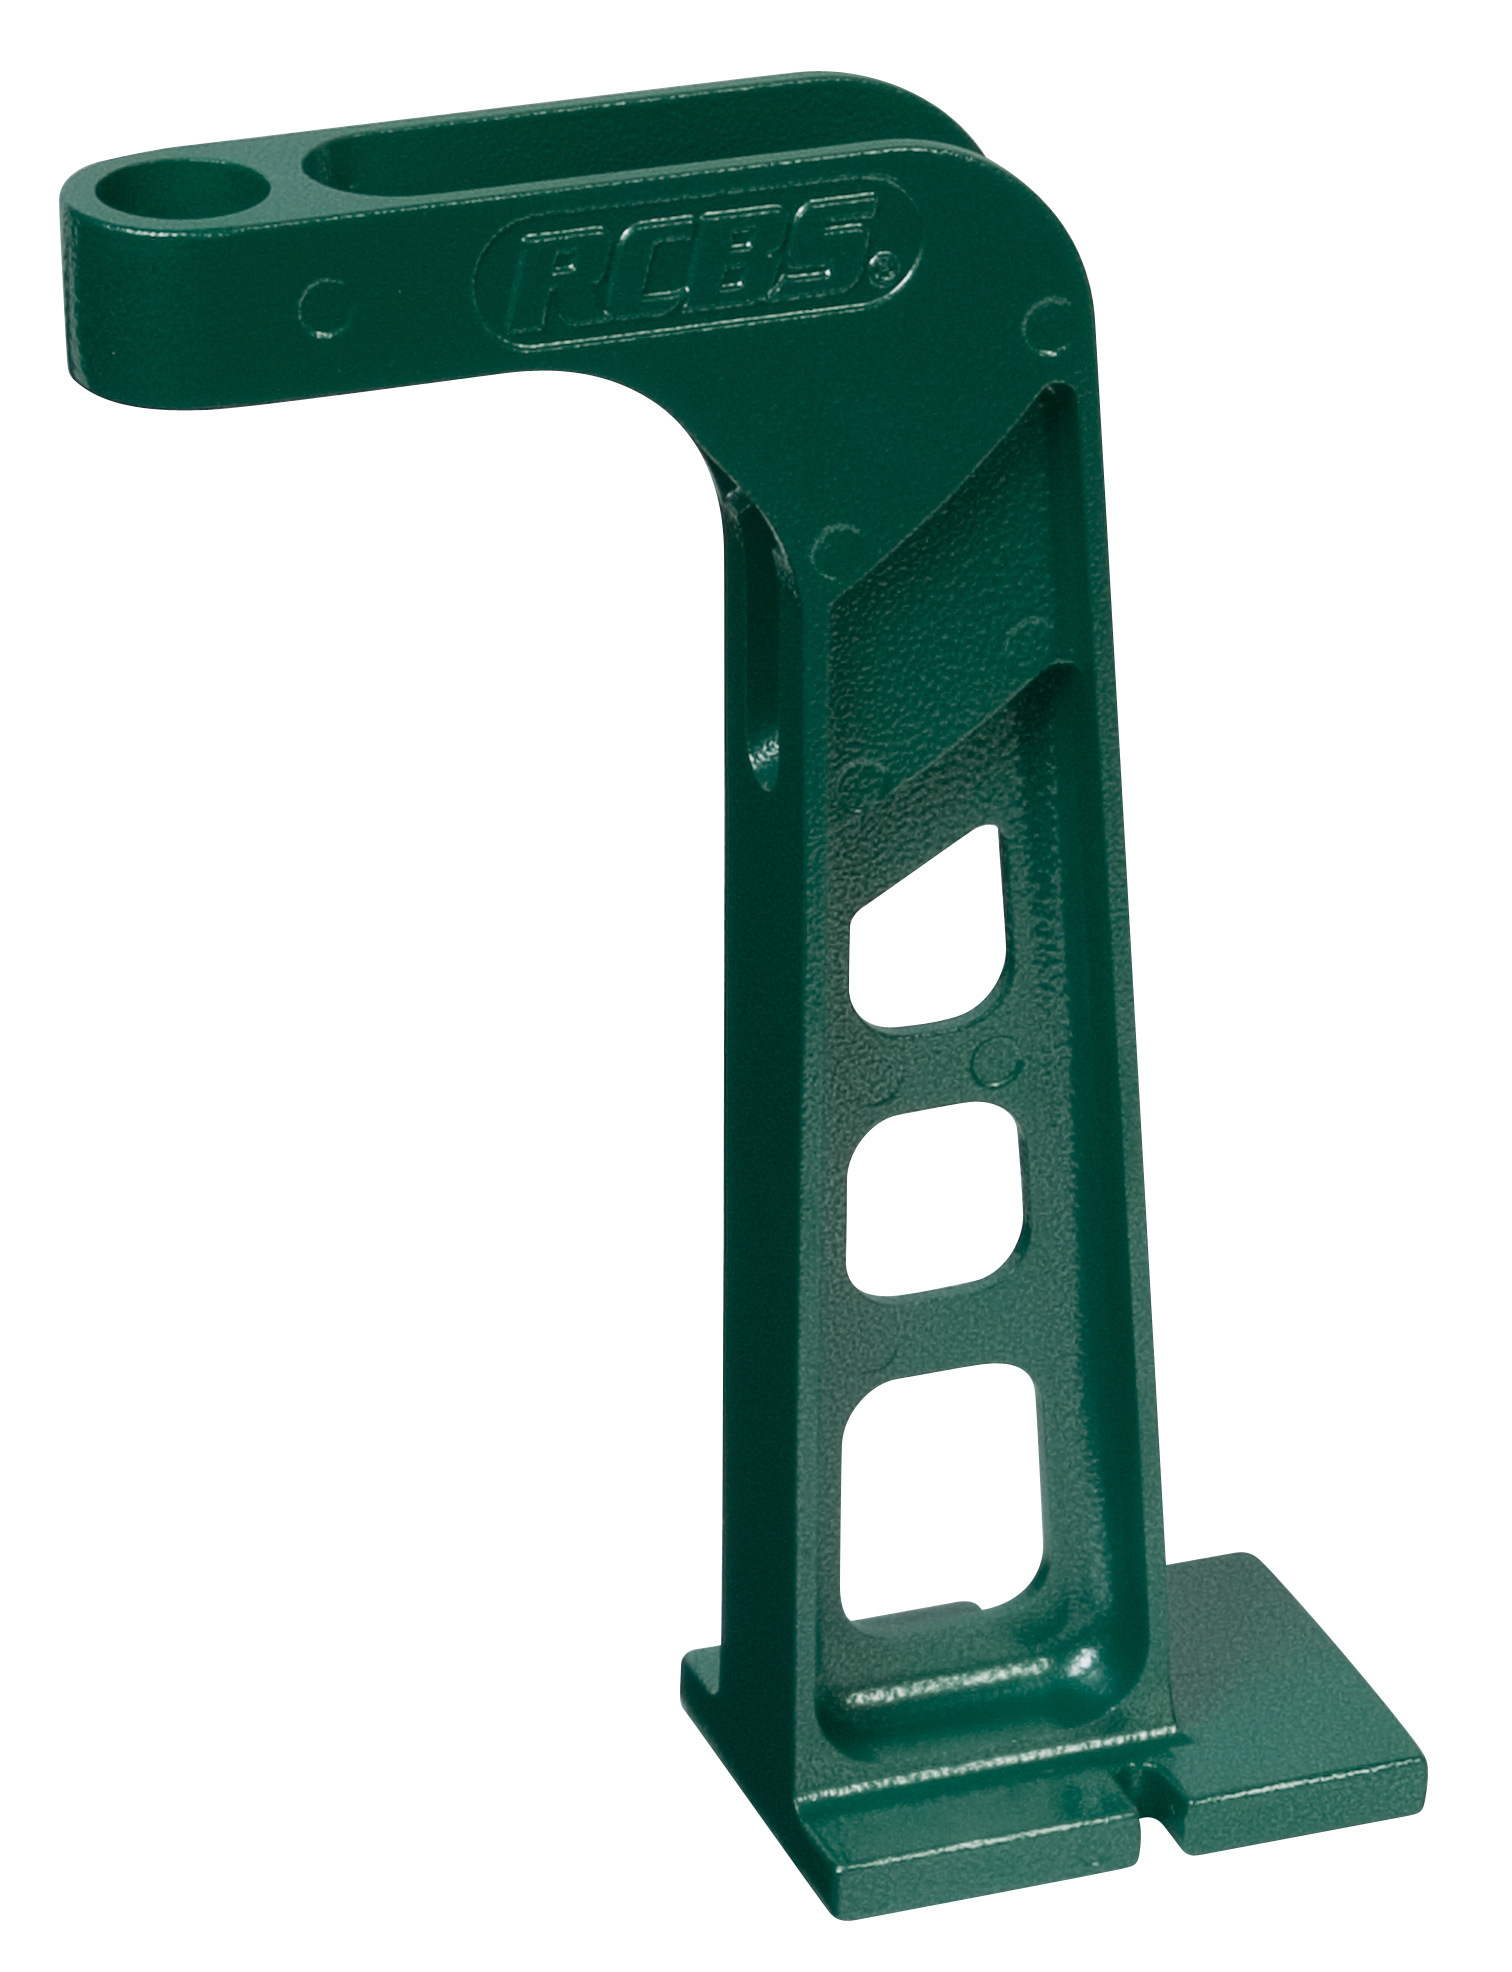 Advanced Powder Measure Stand